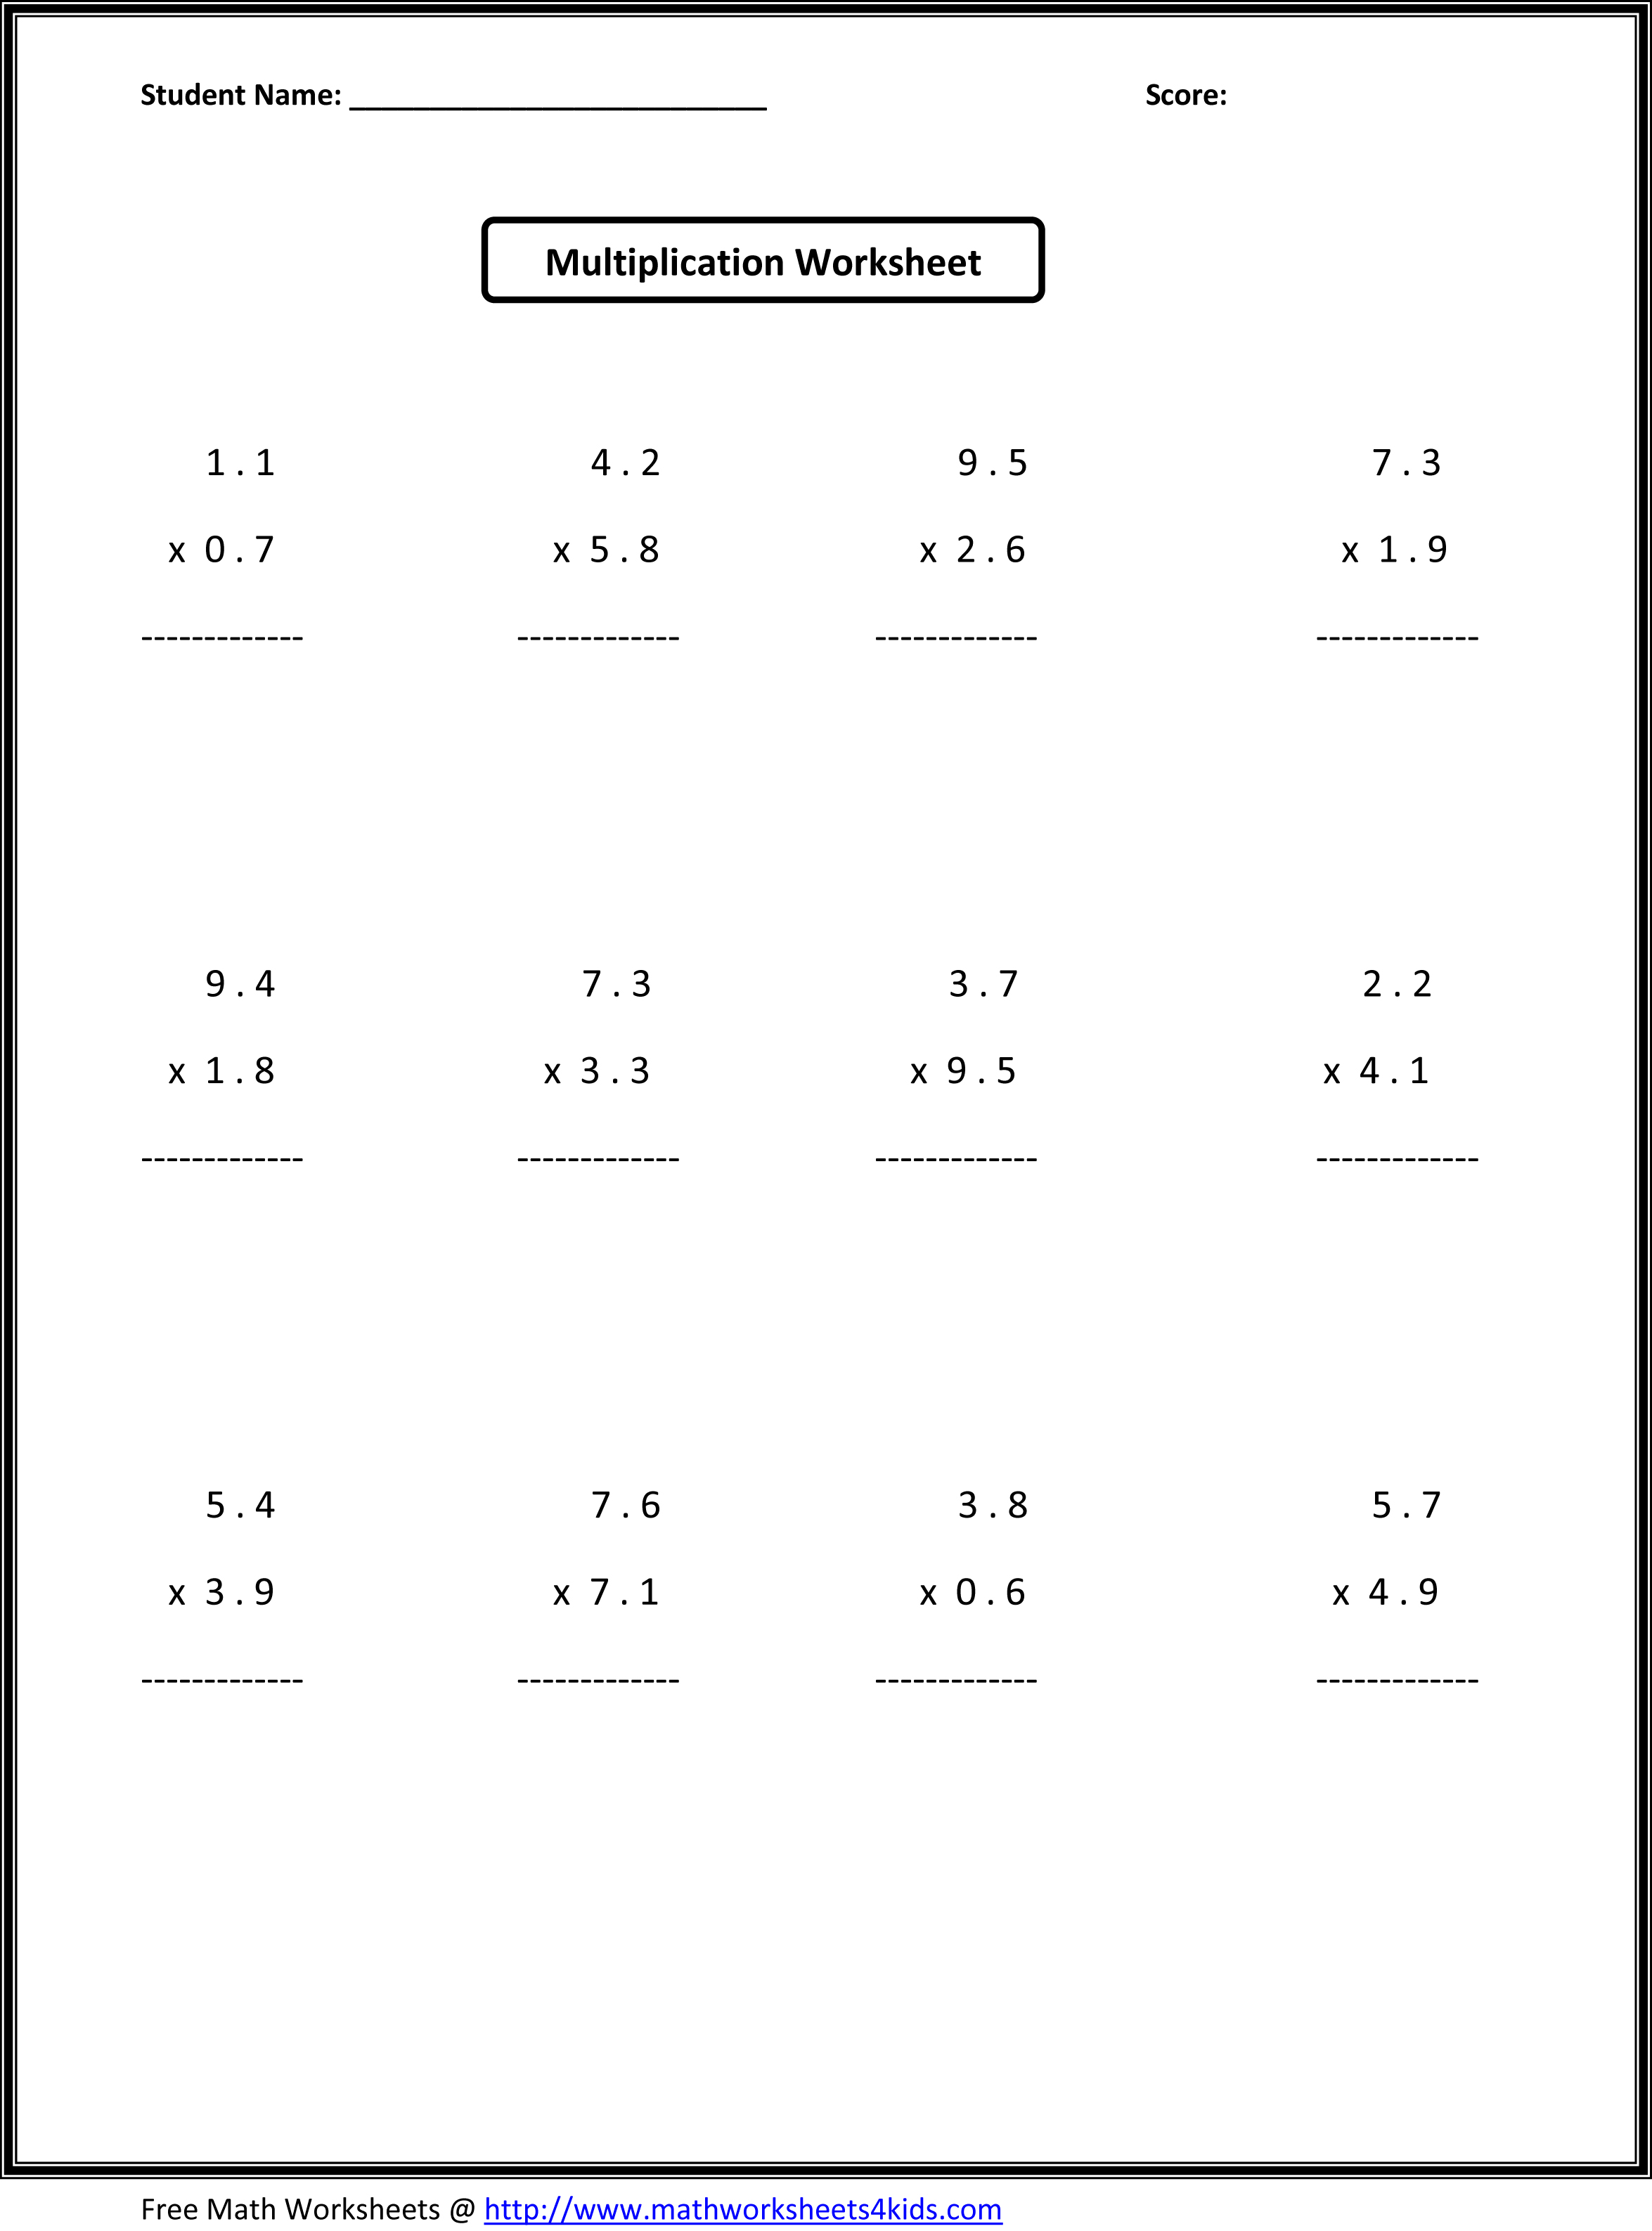 Worksheets 6th Grade Worksheets slope math worksheets mathematics grade 7 scalien download image 6th pc android iphone and ipad